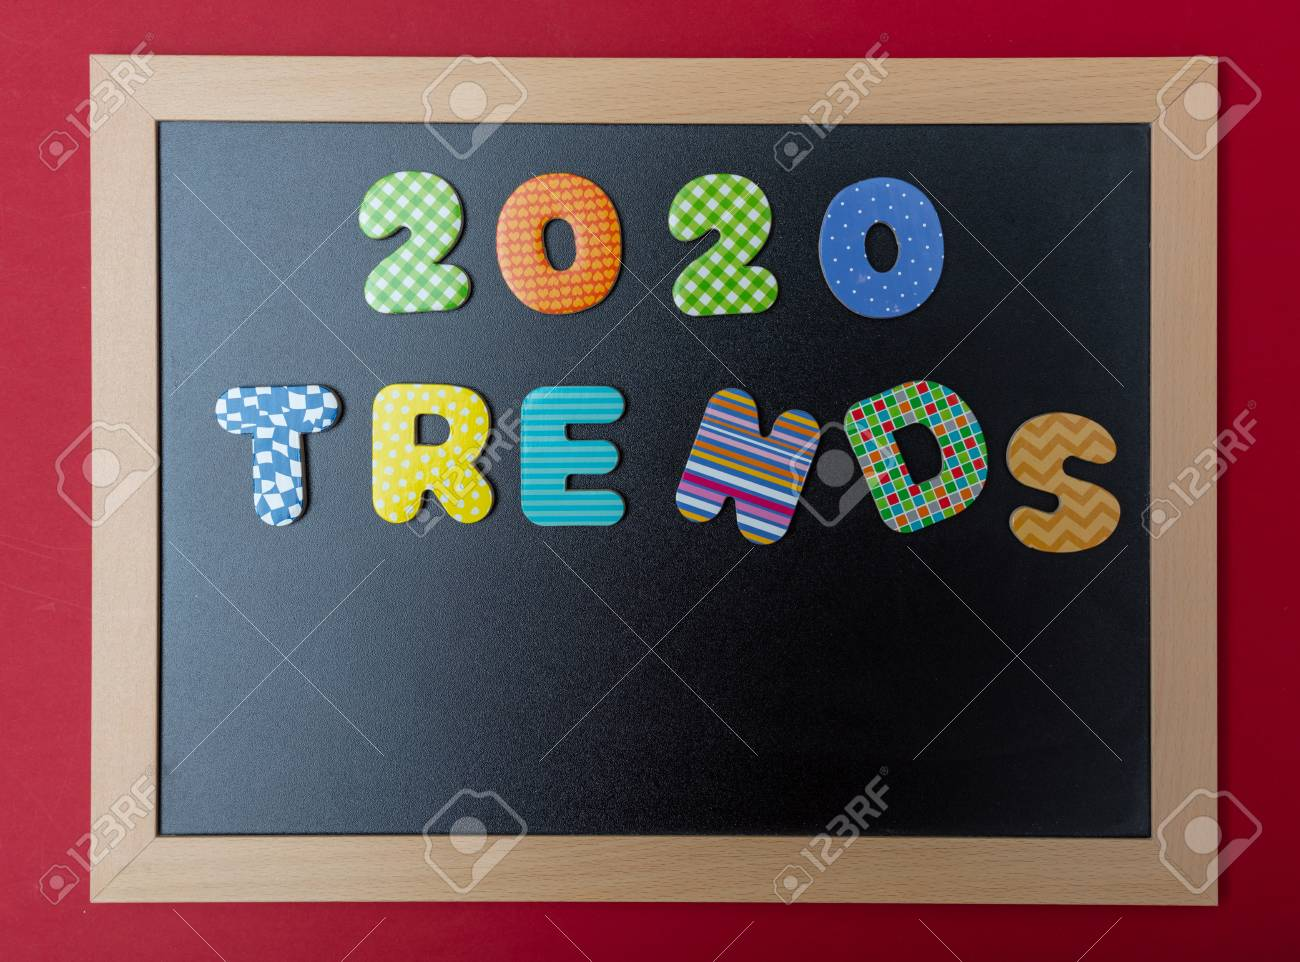 2020 New year trends  Black chalkboard with wooden frame, text